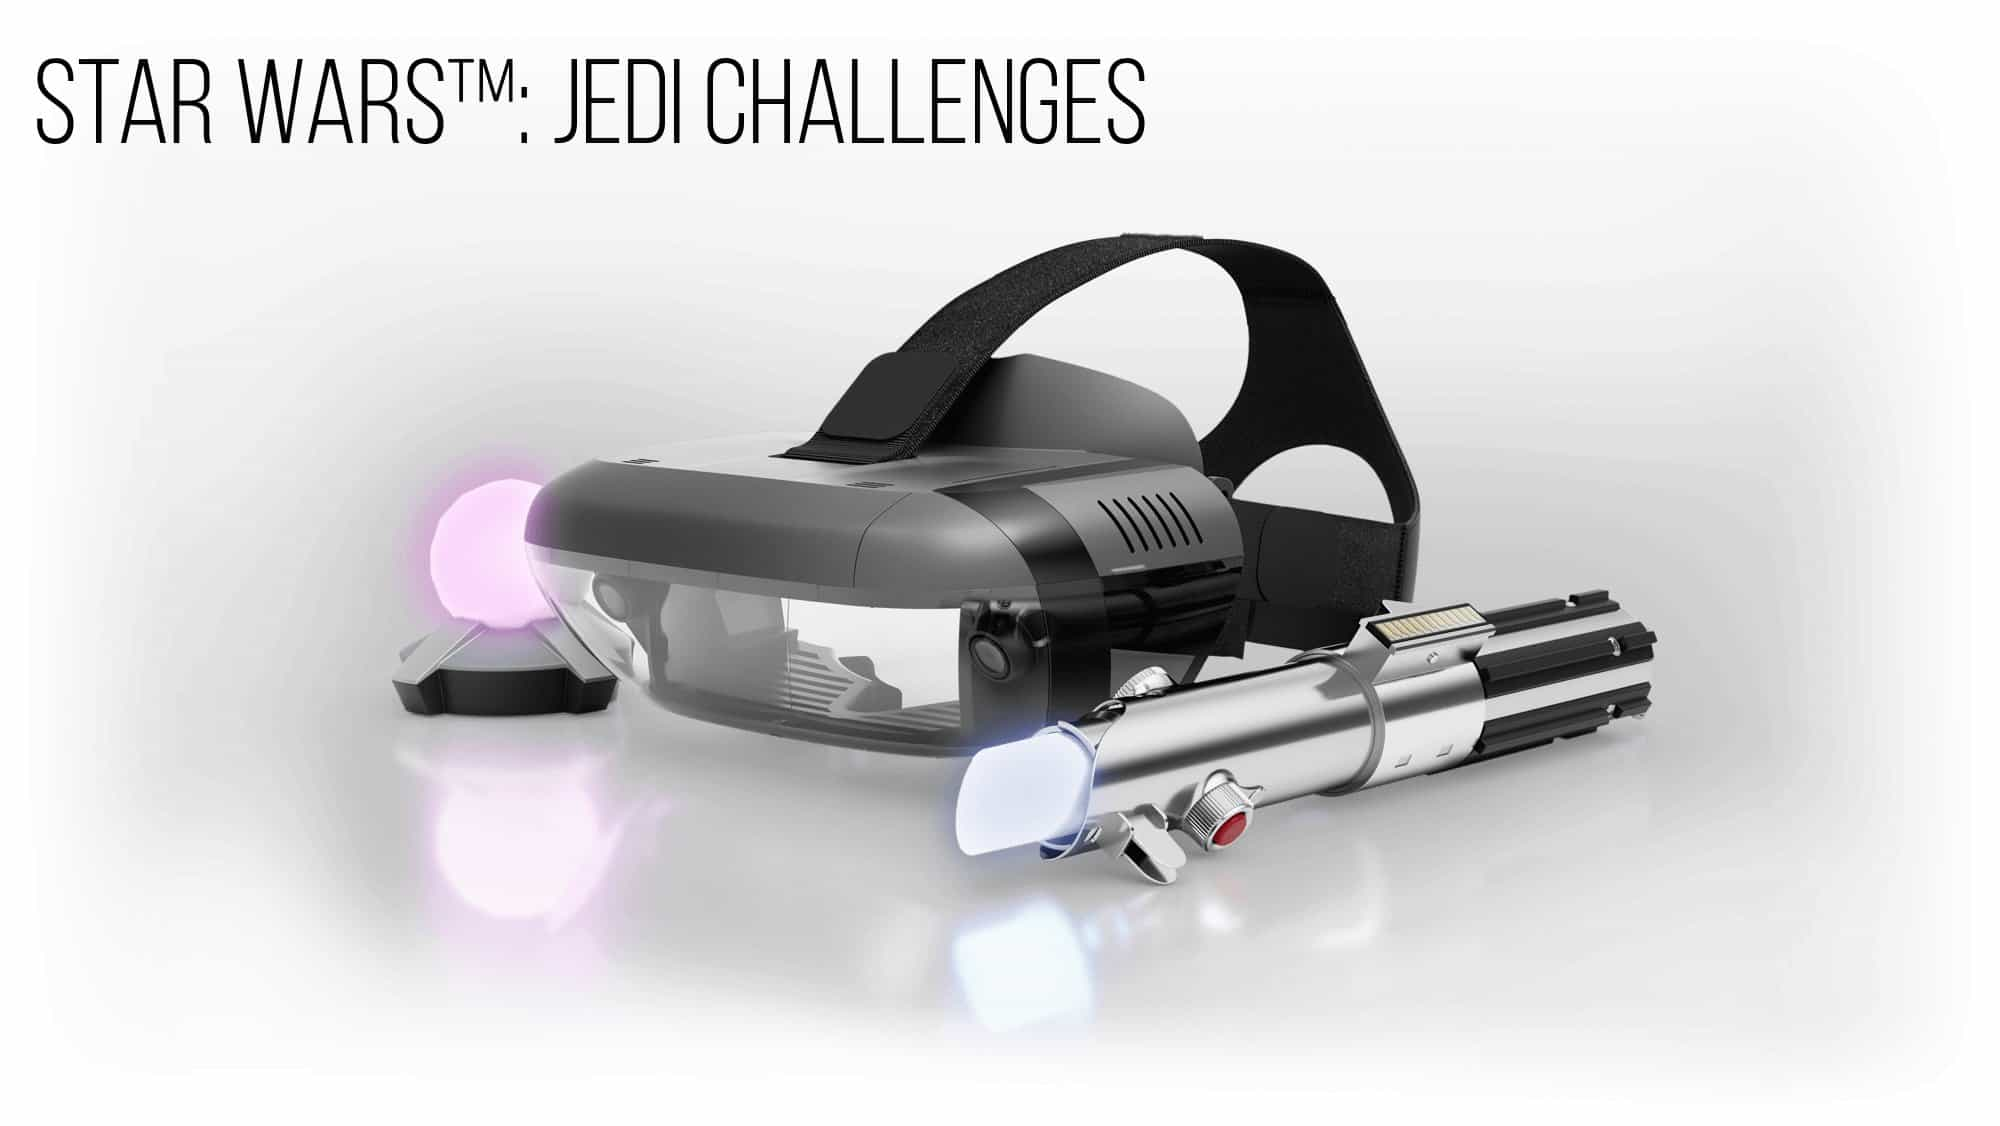 2 Mirage Headset LightSaber Beacon Hero t - Your Ultimate Tech Wish list This Holiday Season.